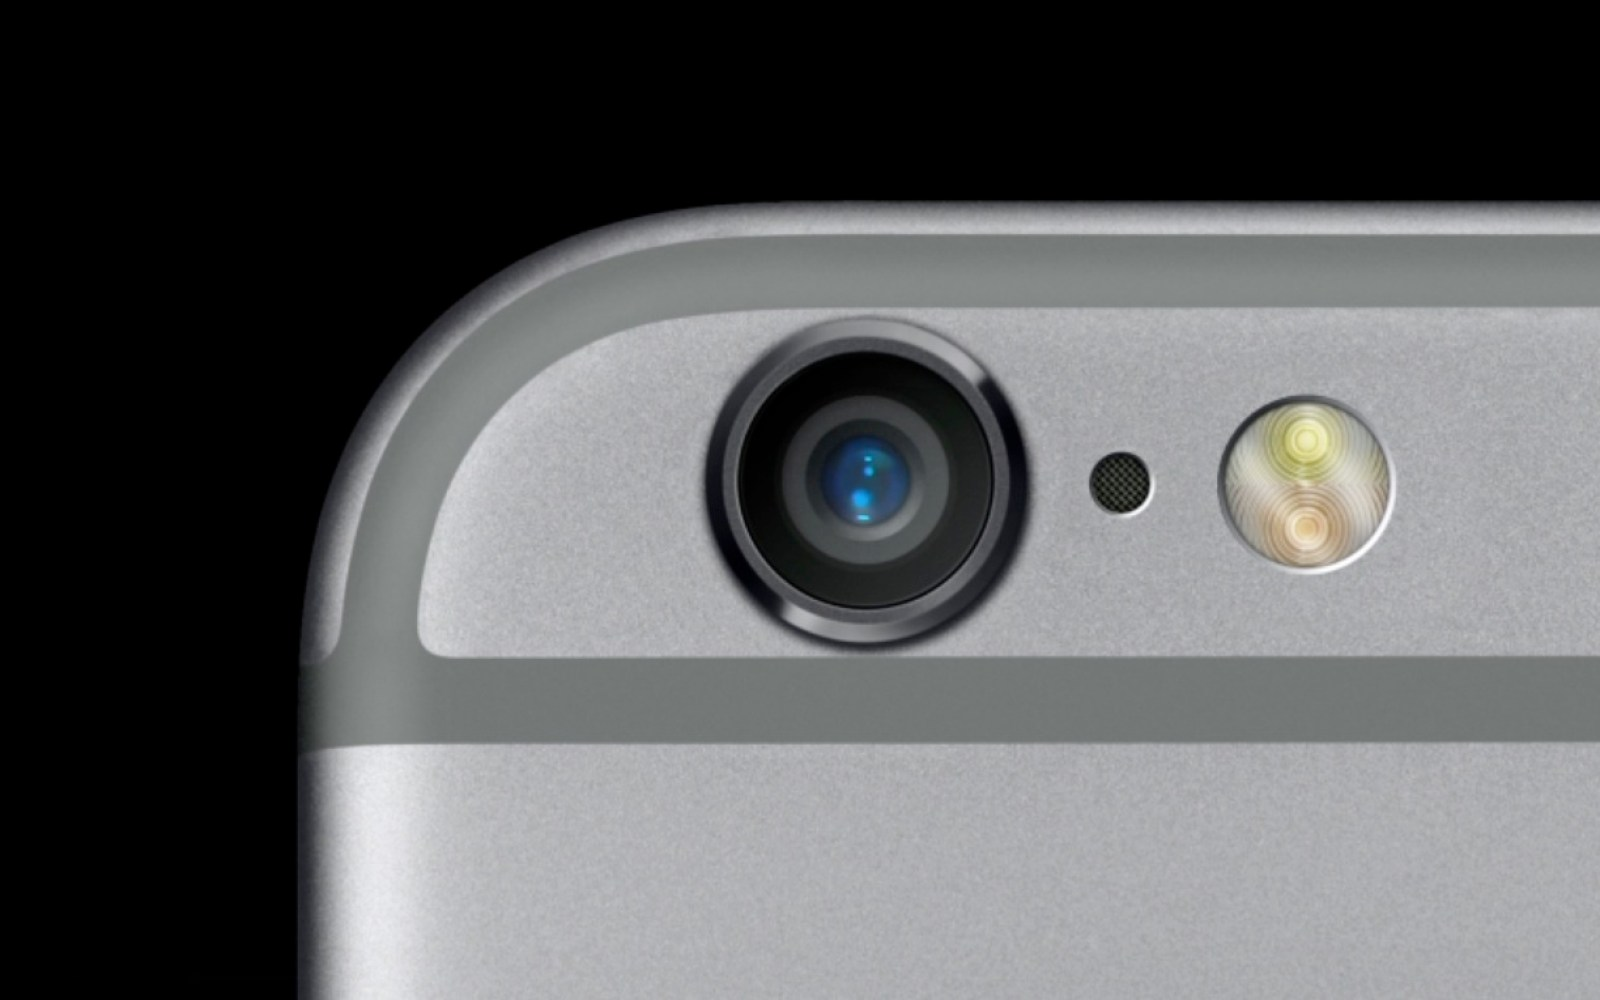 Report: iPhone 7 will lose camera bump and antenna lines with cleaner design